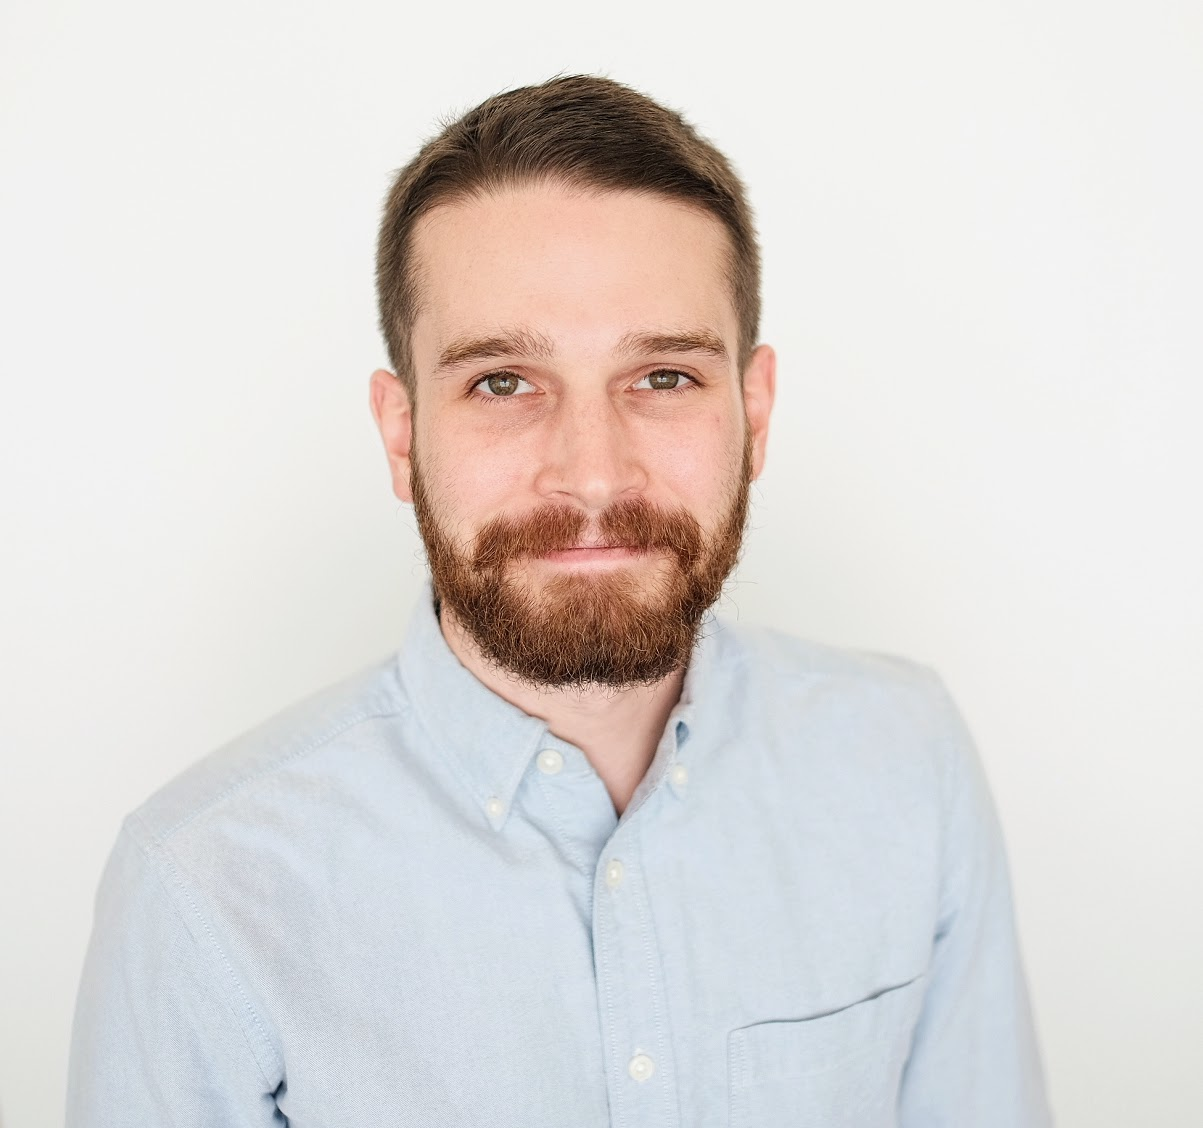 Ryan Caplan MScPT - Founder of Delta Physio